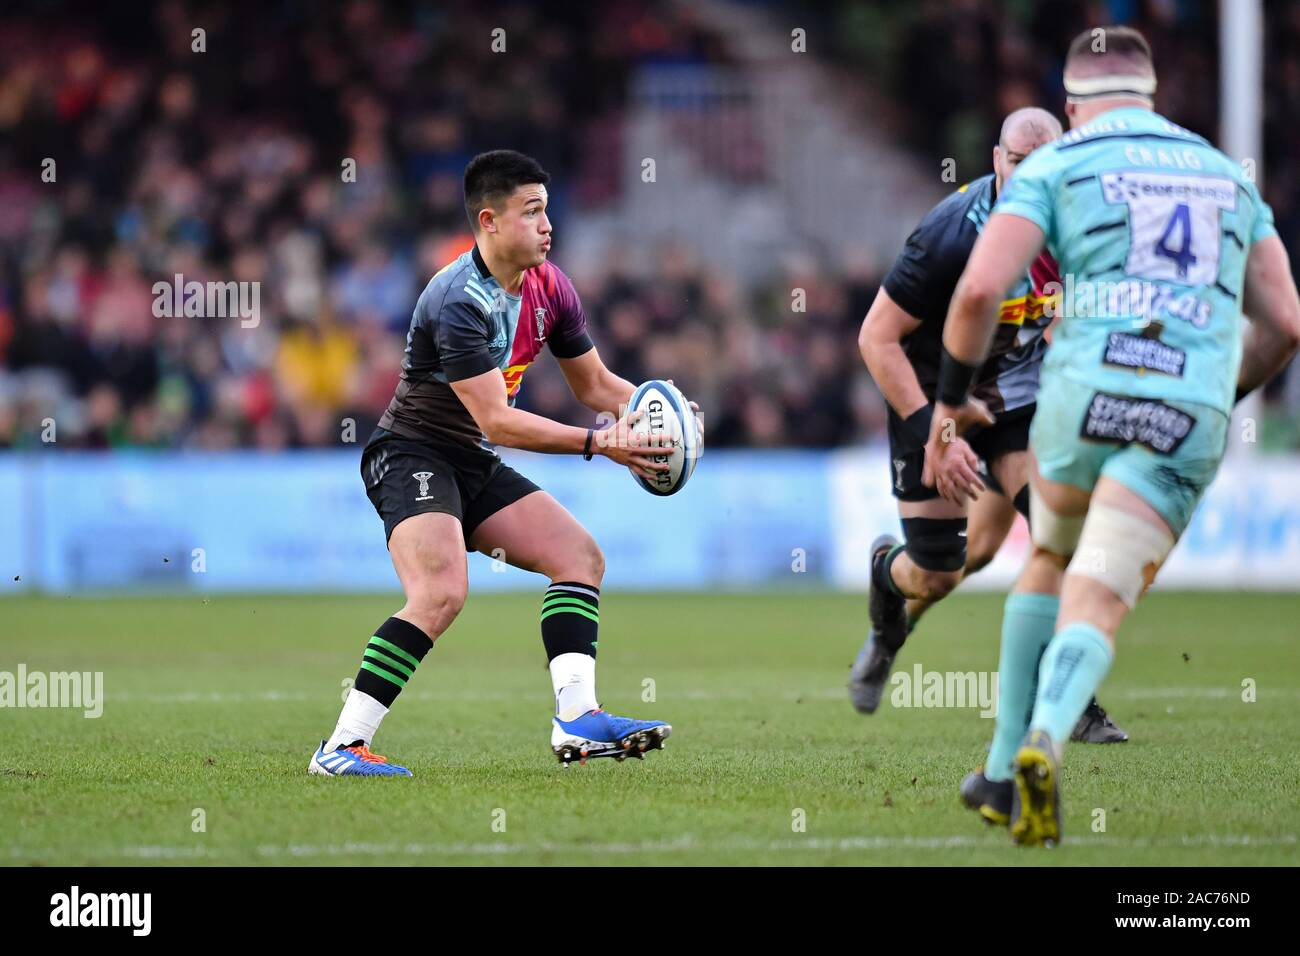 London, UK. 01st Dec, 2019. Marcus Smith of Harlequins in action during Premiership Rugby Cup match between Harlequins and Gloucester at Twickenham Stoop on Sunday, 01 December 2019. London England . (Editorial use only, license required for commercial use. No use in betting, games or a single club/league/player publications.) Credit: Taka G Wu/Alamy Live News Stock Photo